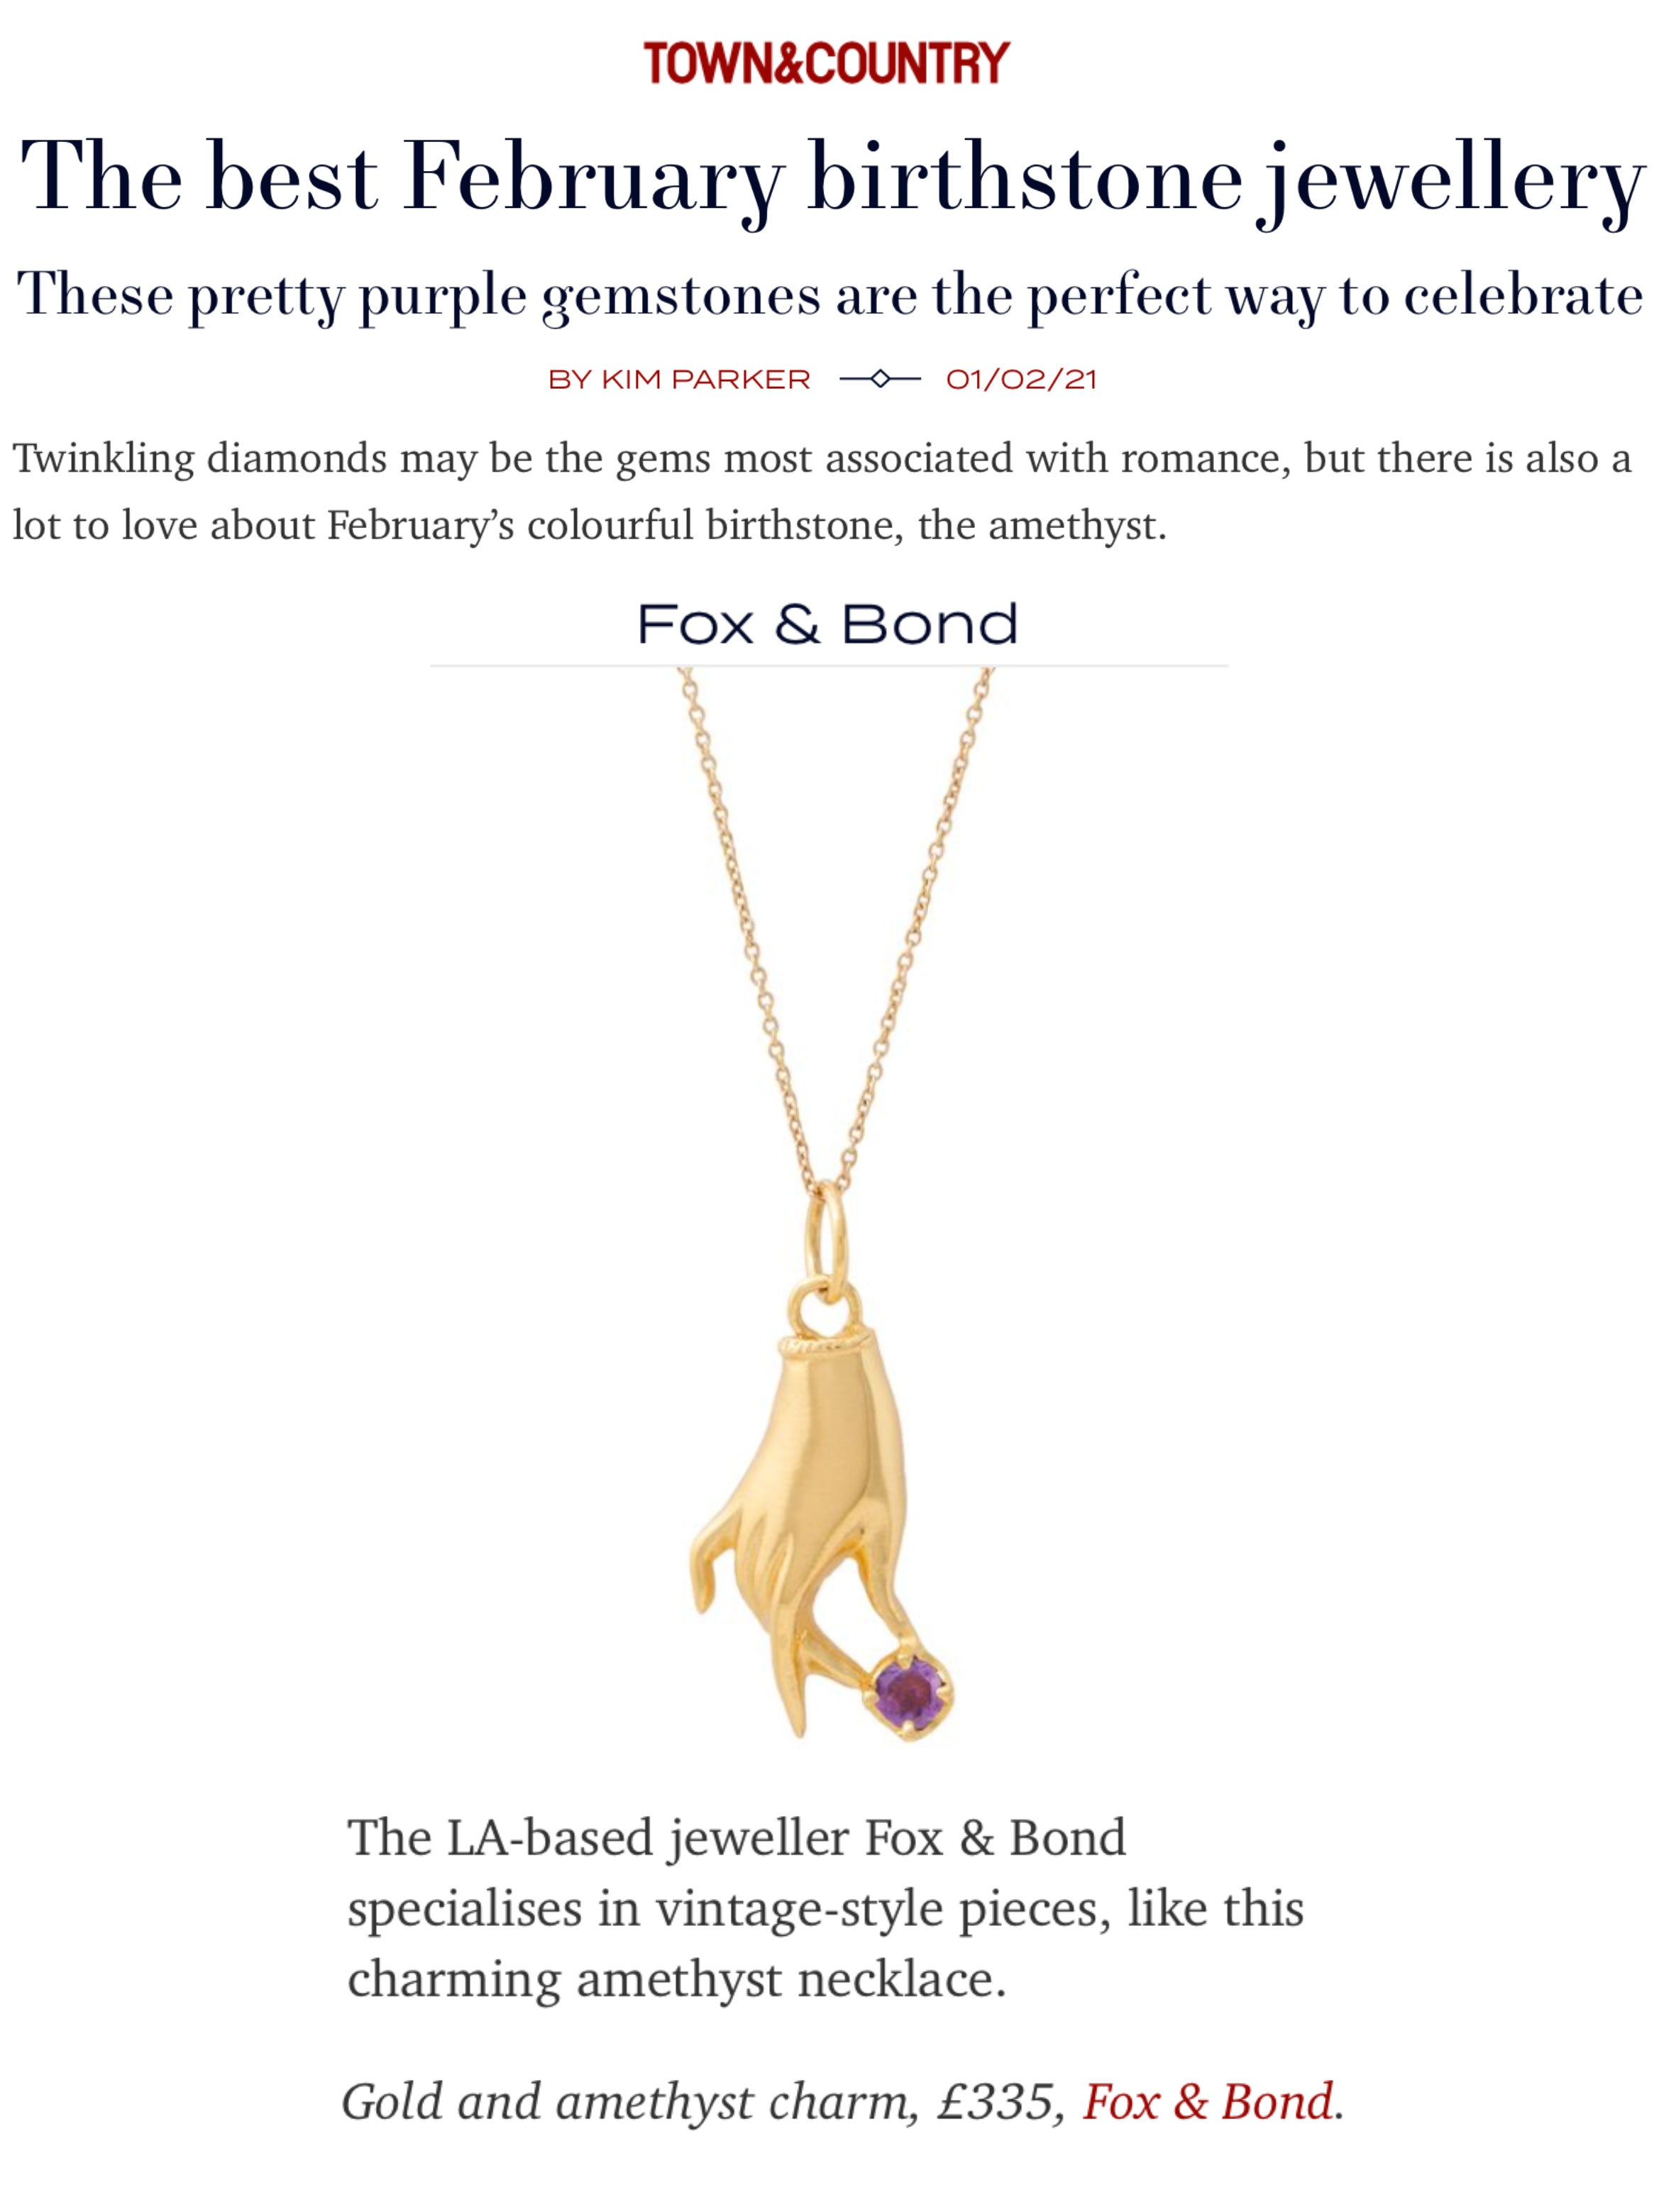 Town & Country UK: The best February birthstone jewellery